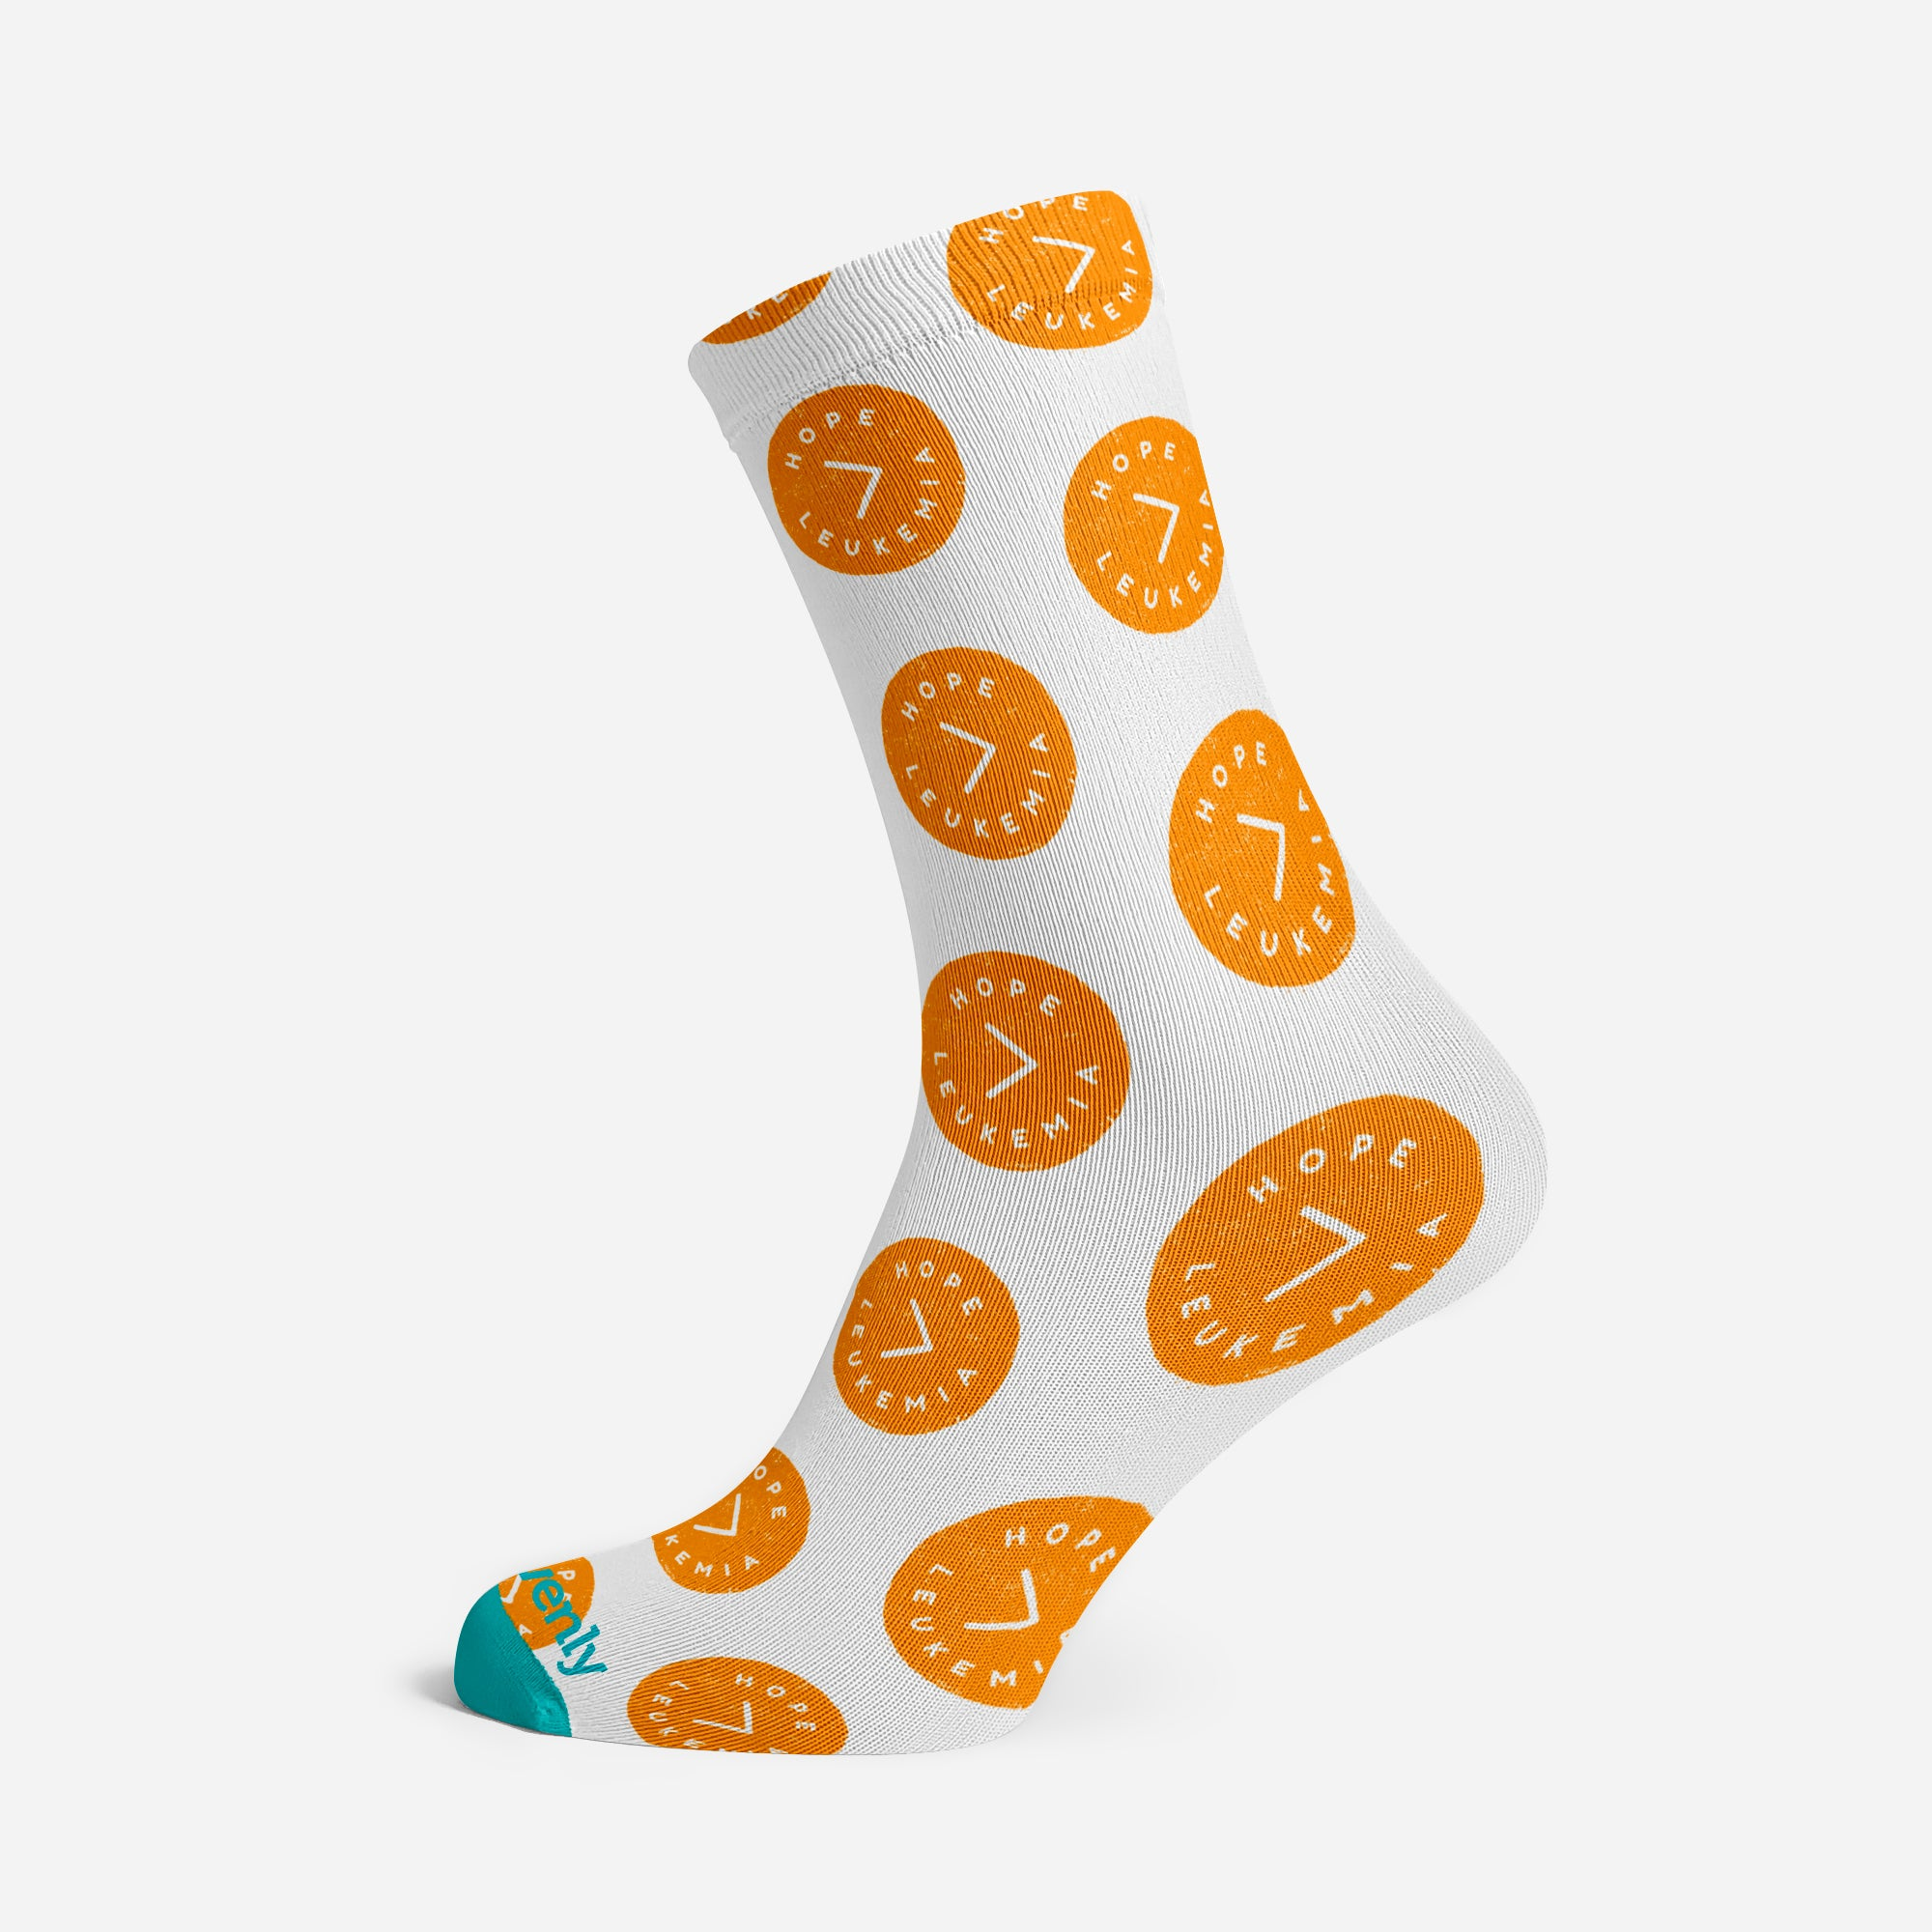 HOPE > LEUKEMIA PREMIUM ADULTS SOCKS